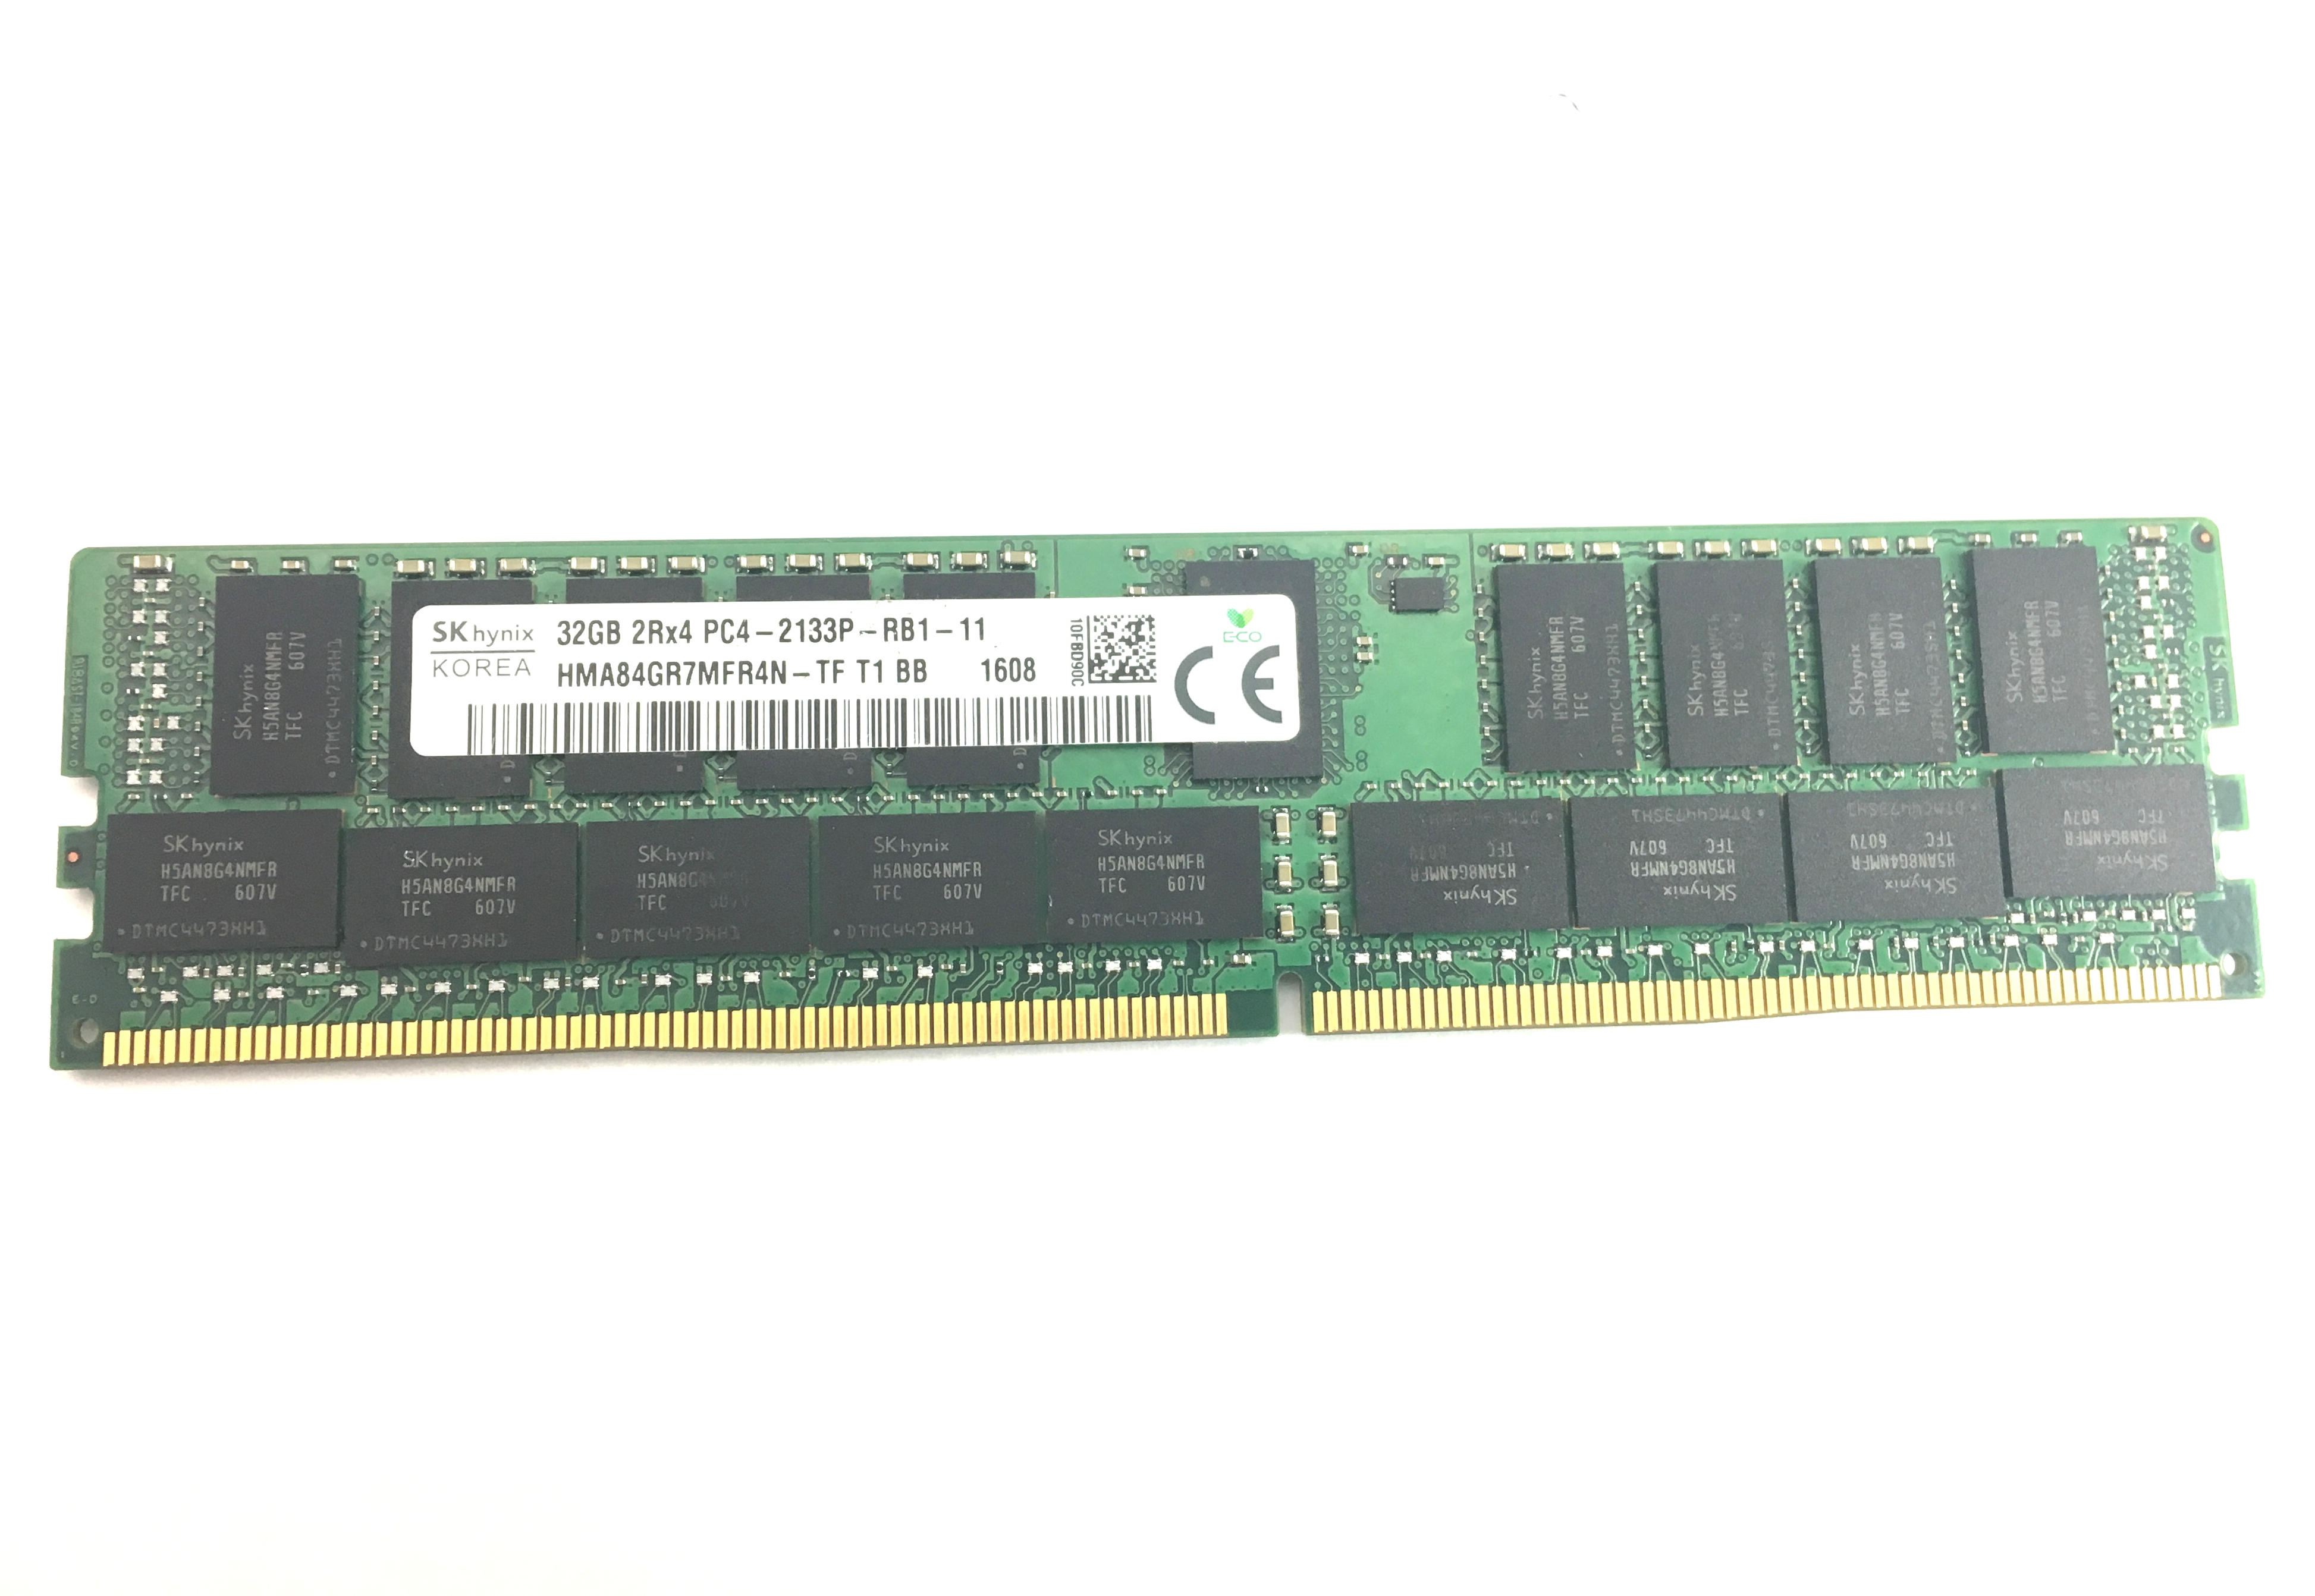 Hynix 32GB 2Rx4 DDR4 PC4 2133P ECC Registered Memory (HMA84GR7MFR4N-TF)